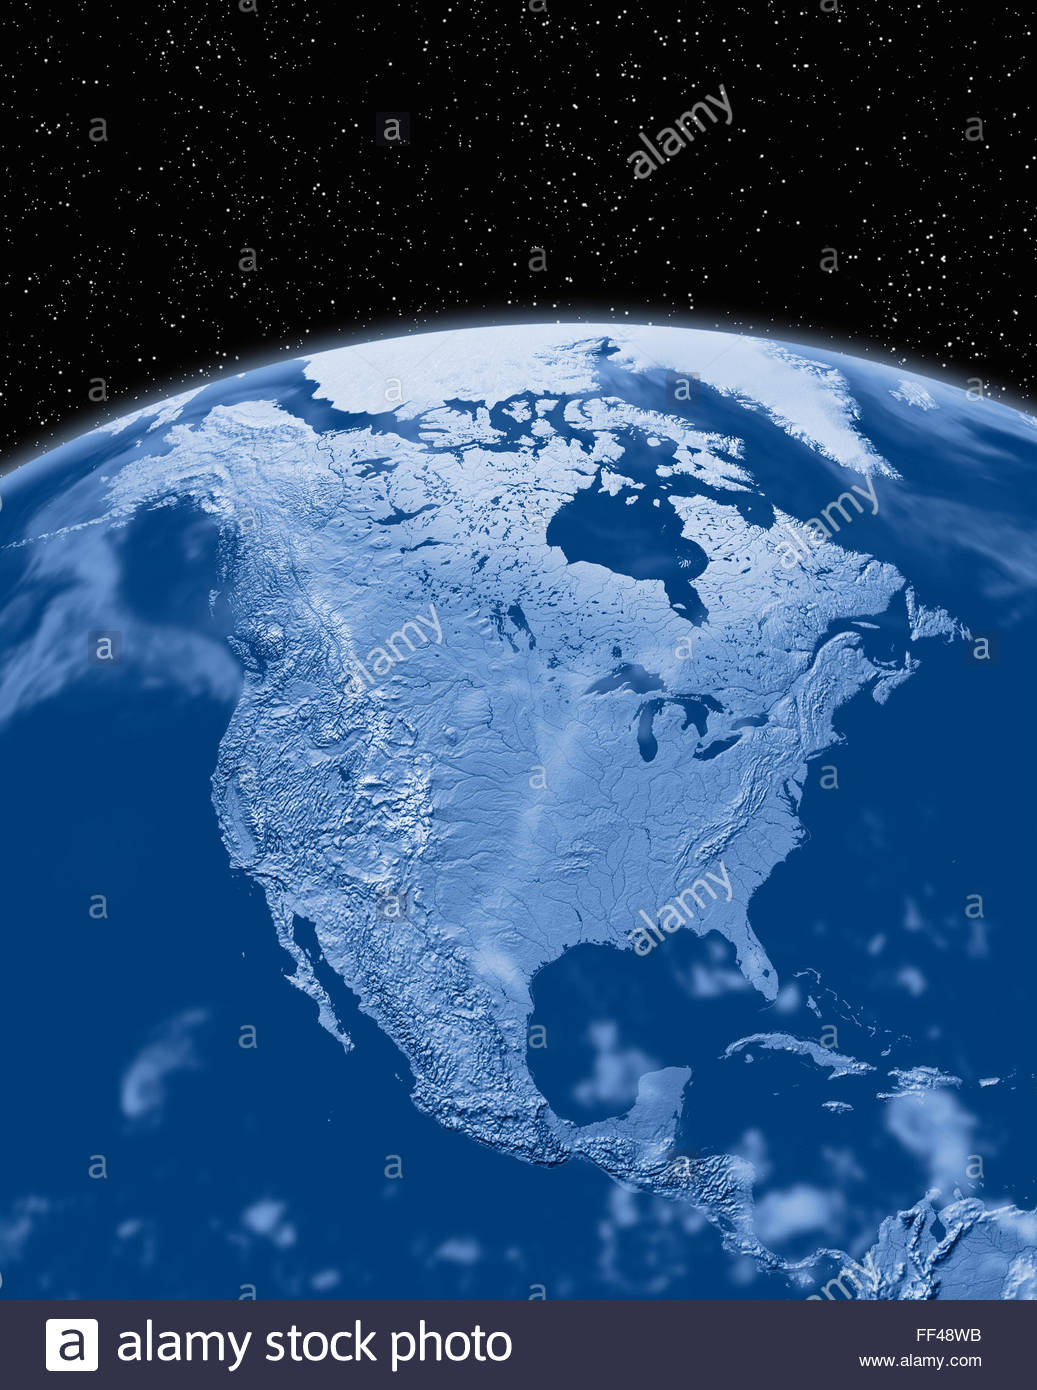 Earth from space north america stock photos earth from space north simulated satellite view of part of the earth from space north america world map space planet gumiabroncs Image collections